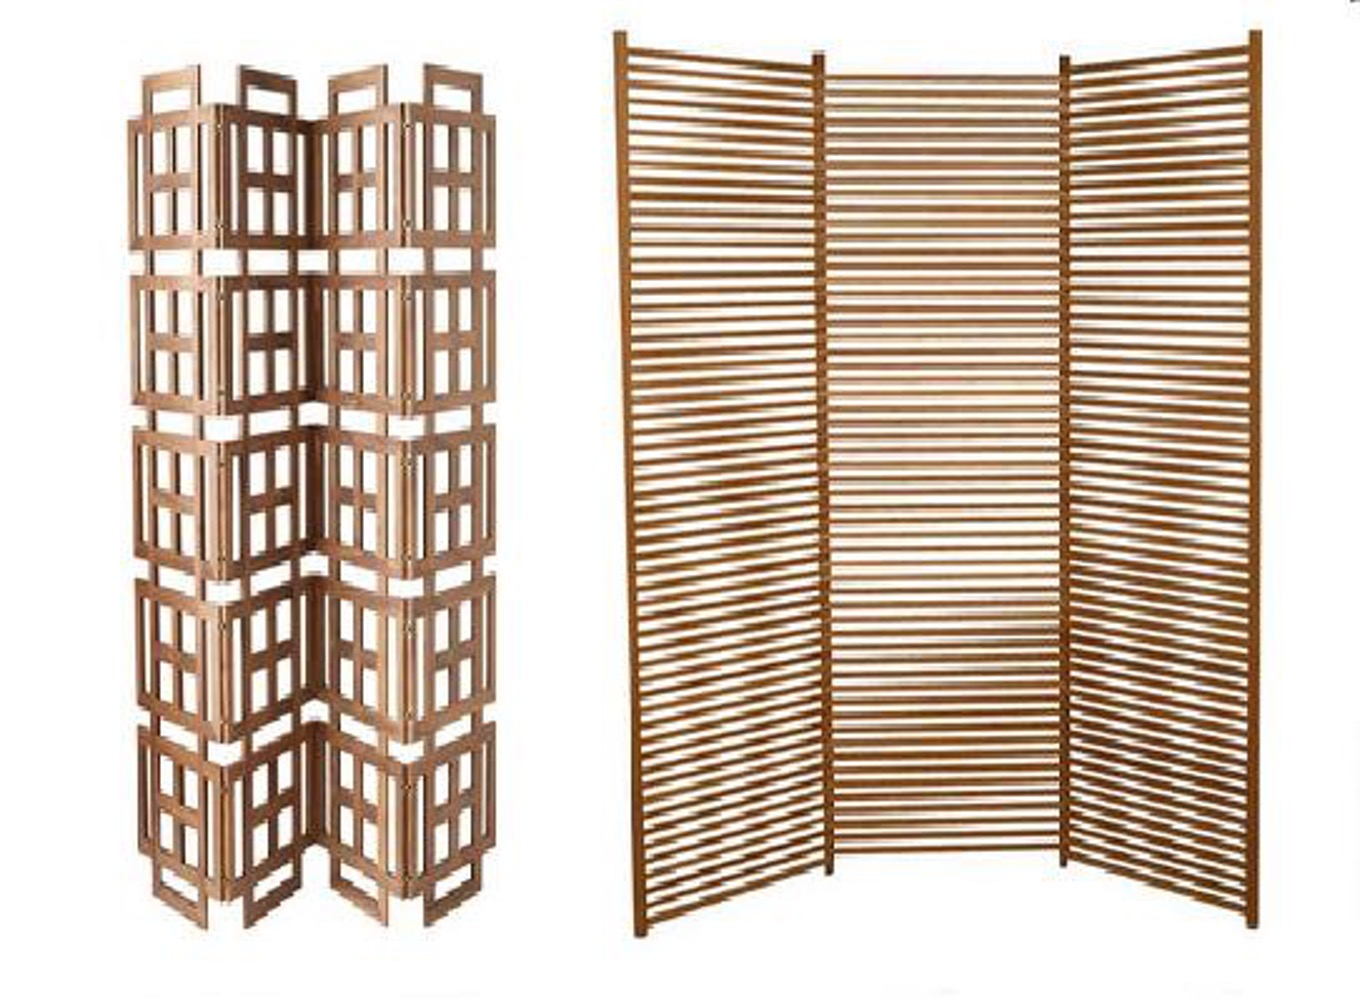 Great Room Separators Ikea for Any Room in Your Home: Shoji Room Divider | Room Separators Ikea | Home Depot Room Dividers